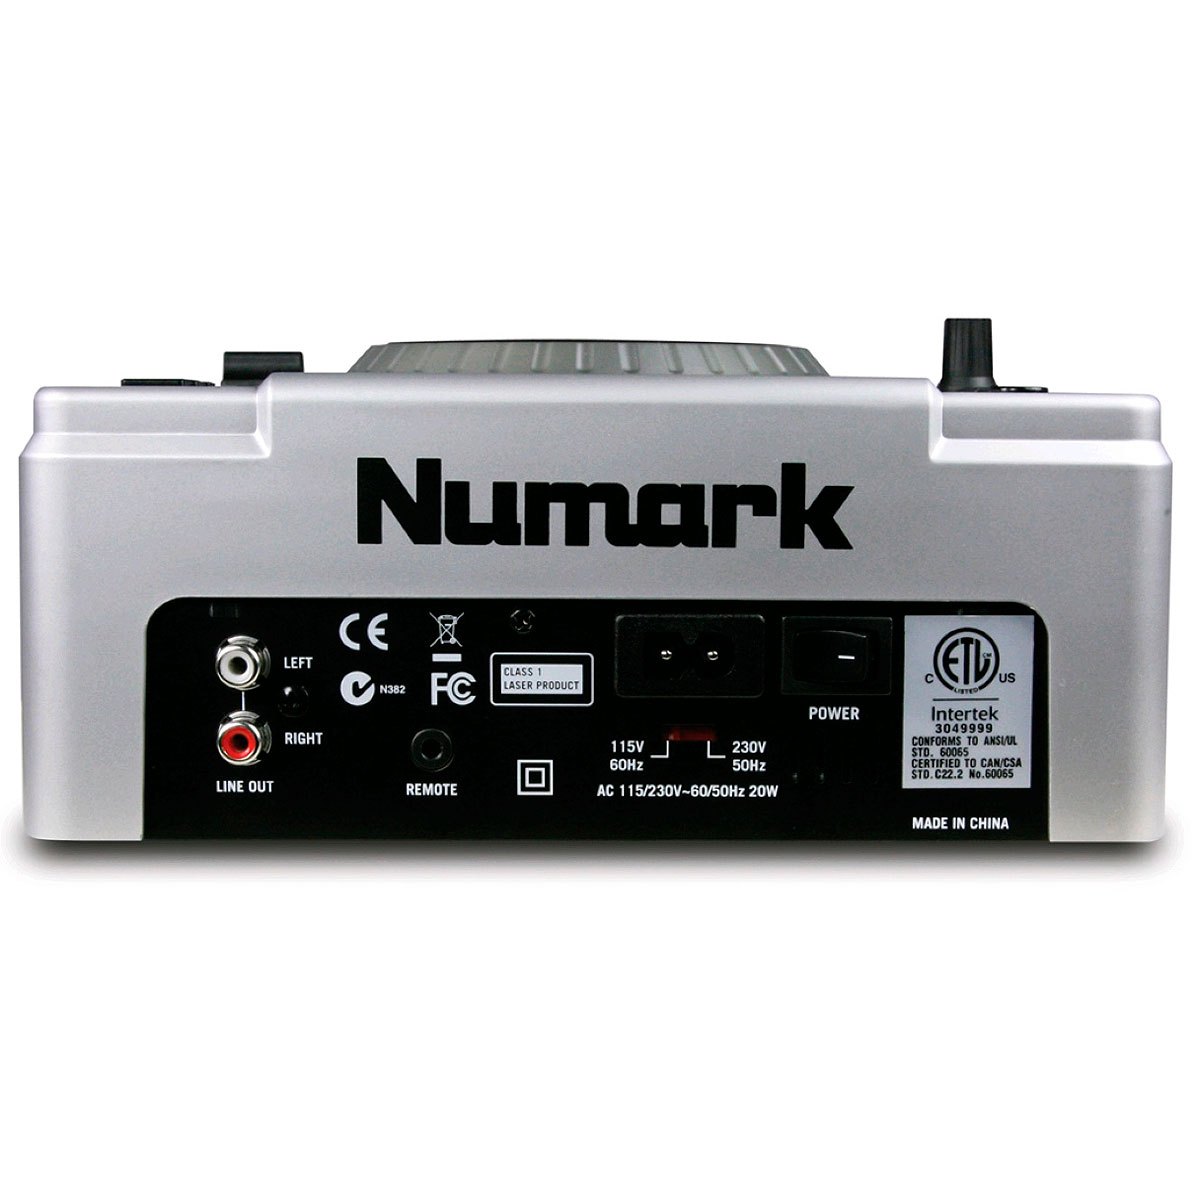 NDX400 - CDJ Player c/ USB NDX 400 - Numark